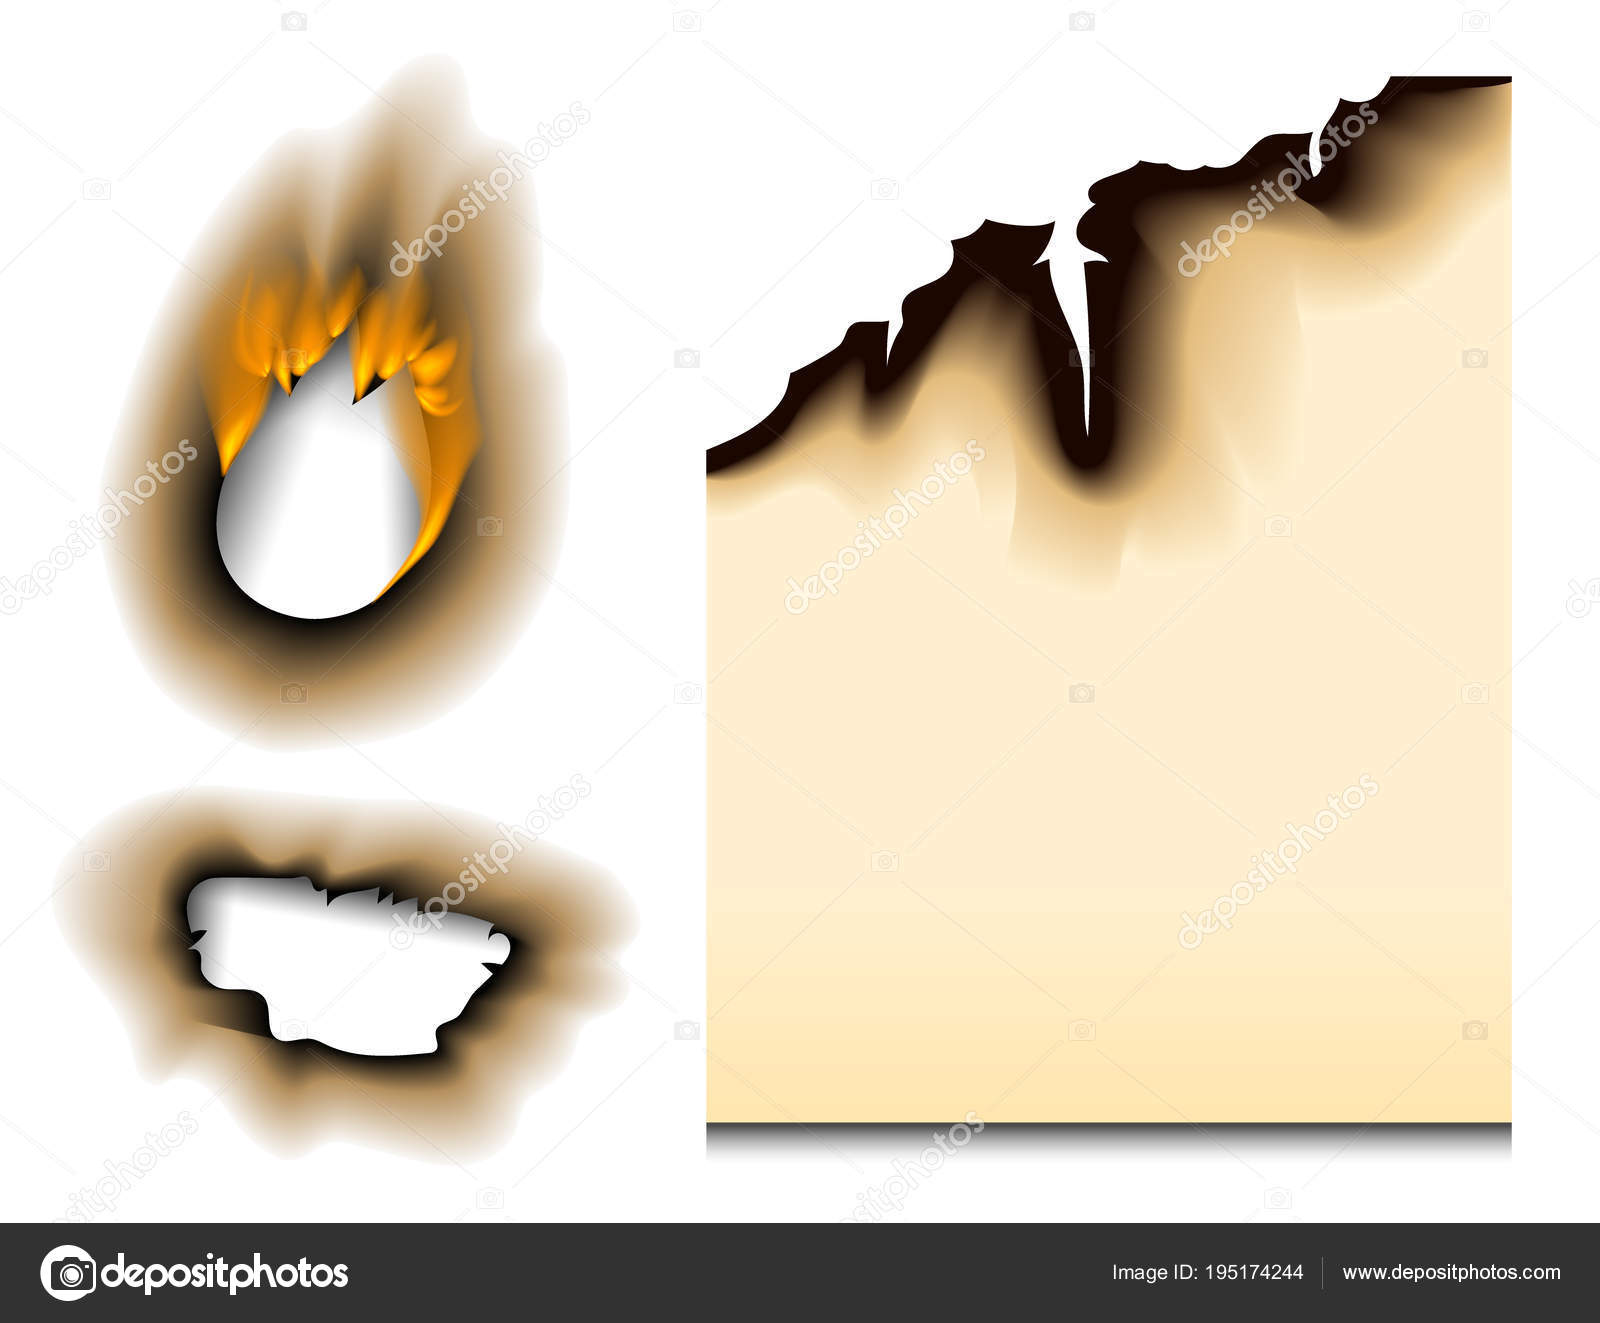 burnt piece burned faded paper hole realistic fire flame isolated